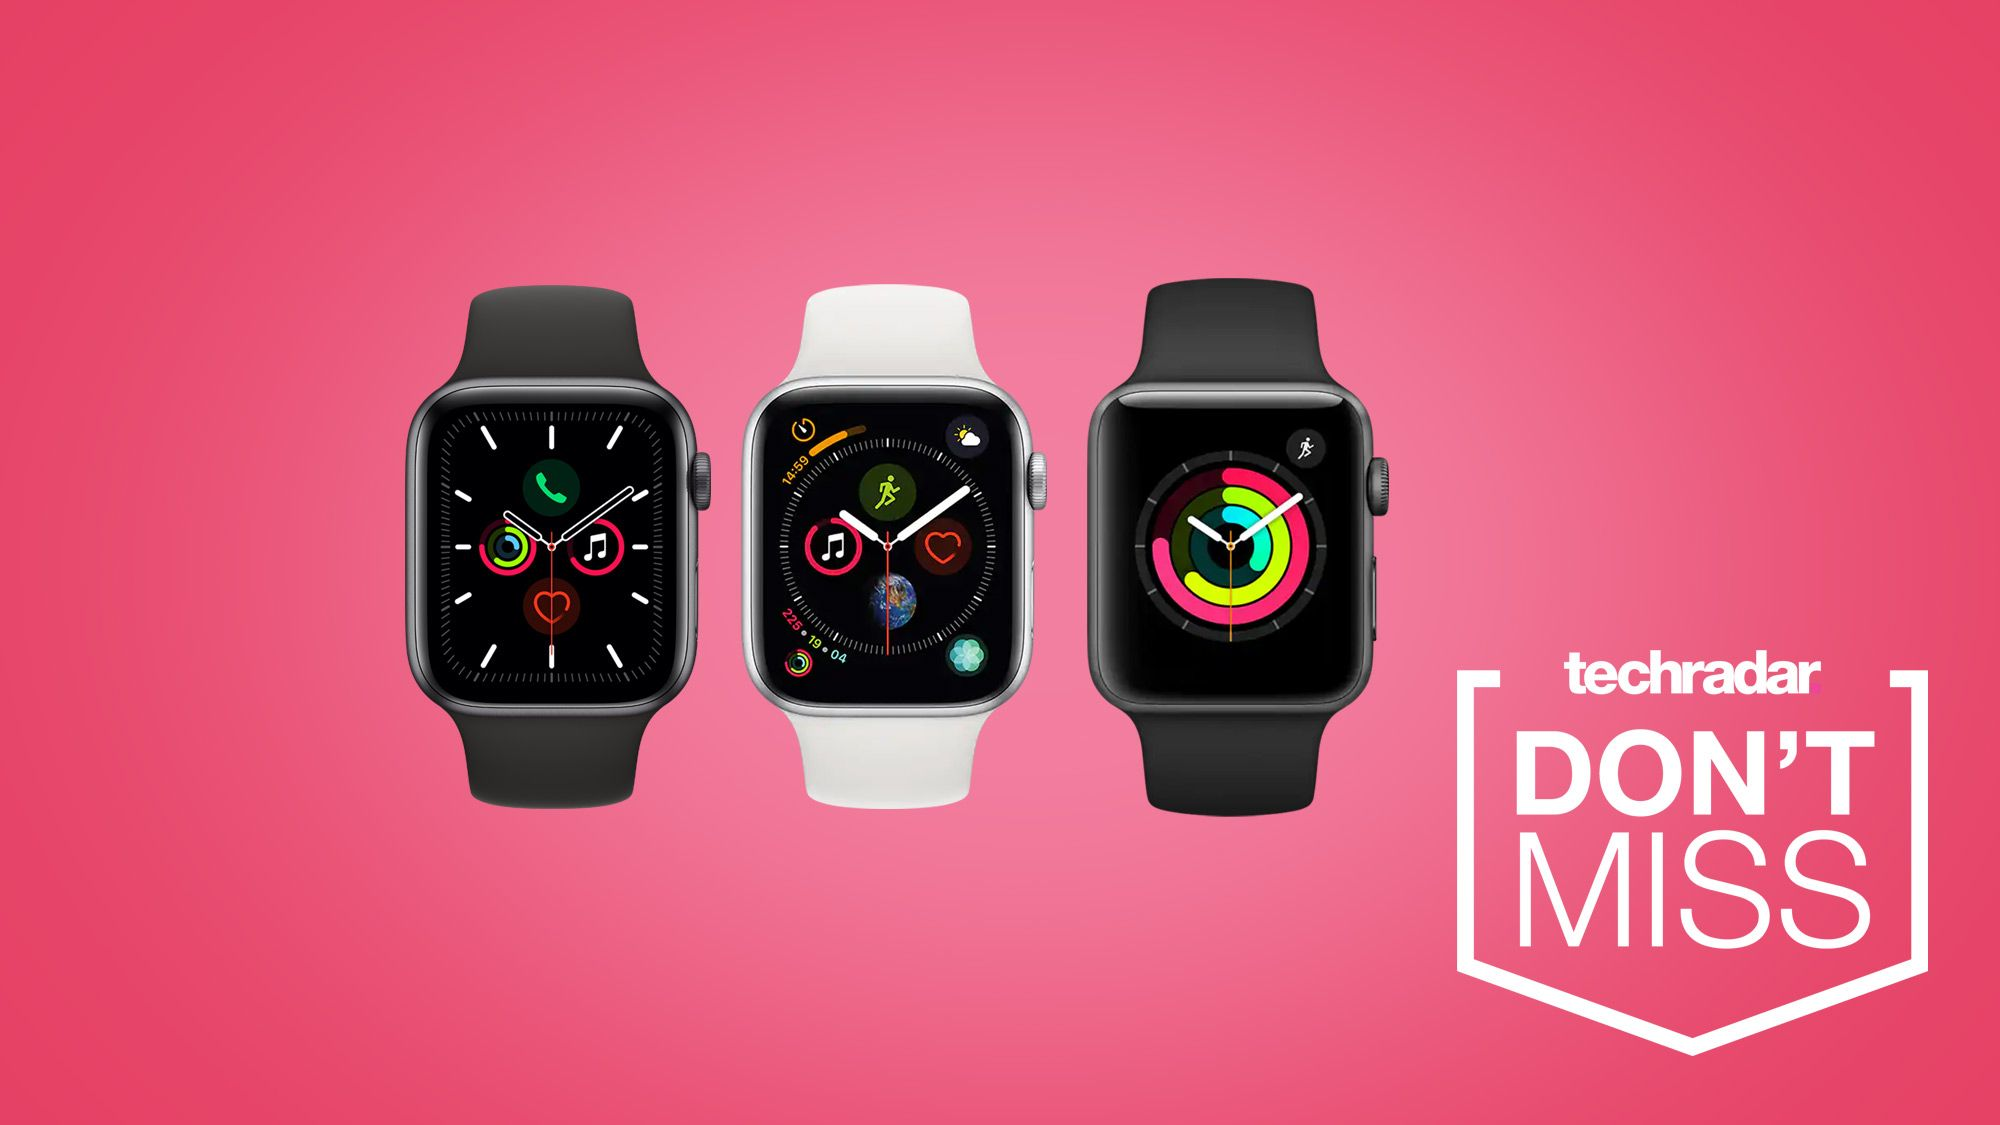 The Apple Watch 4 Is Still The Cheapest Price Ever In The Early January Sales 2020 Apple Watch Deals Apple Watch Watch Deals